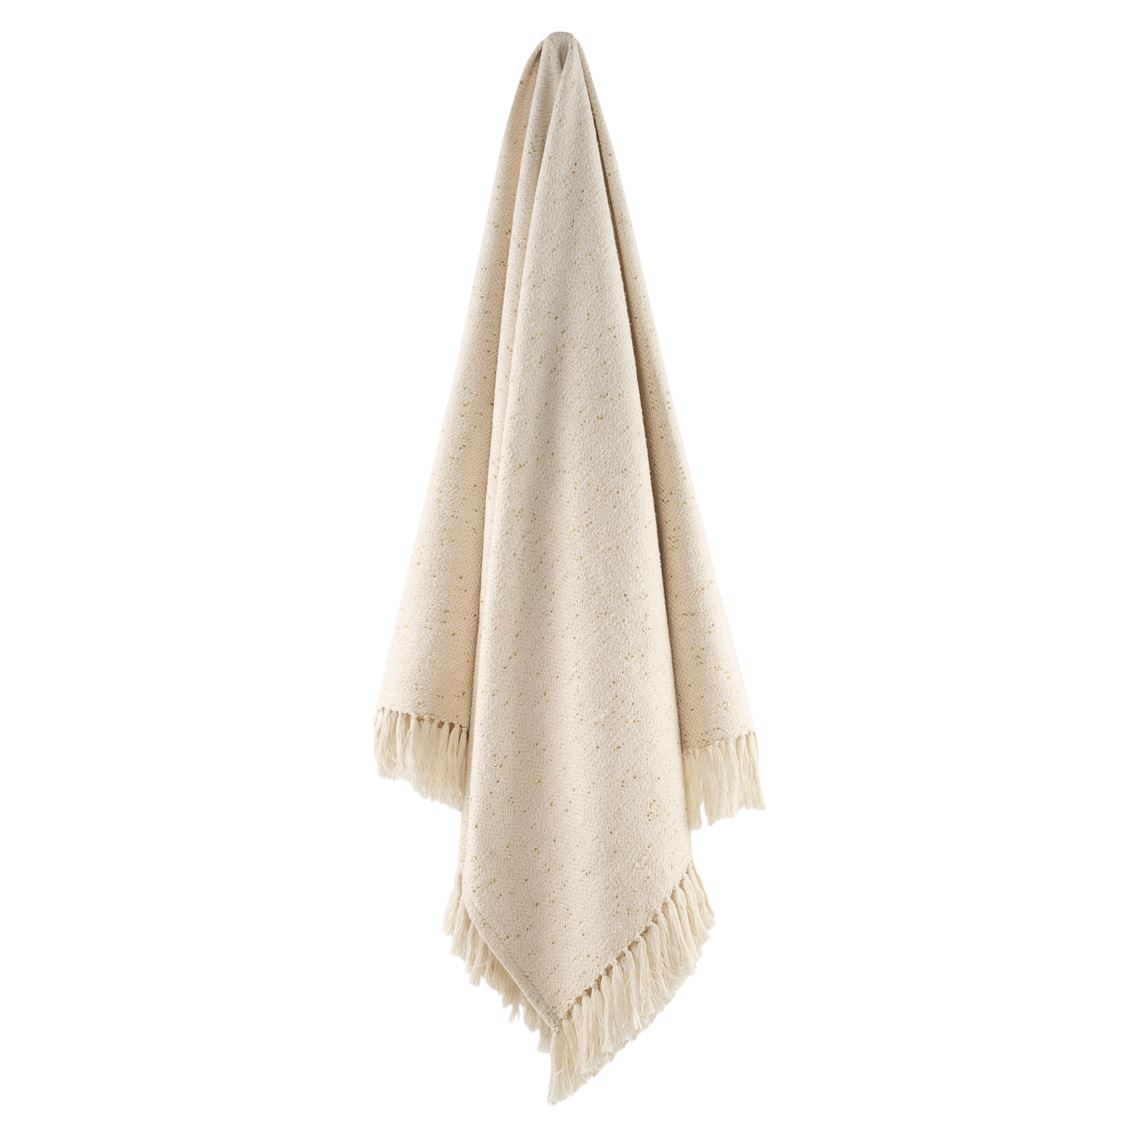 Dewhirst Throw Size W 34cm x D 46cm x H 7cm in Natural Freedom